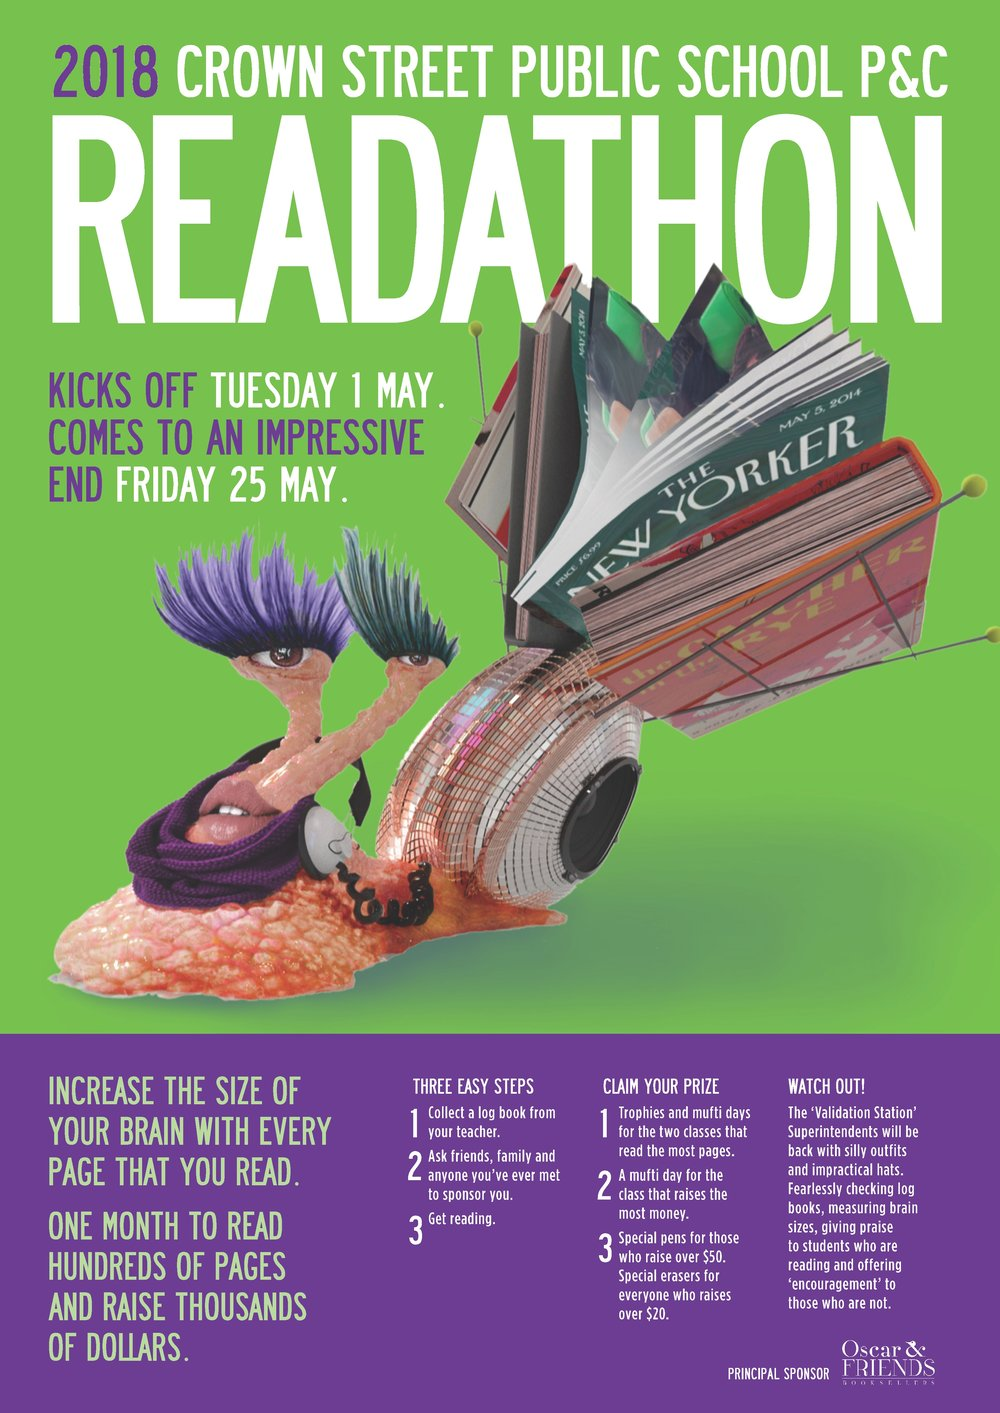 crownst-readathon2018-a3poster_Small.jpg